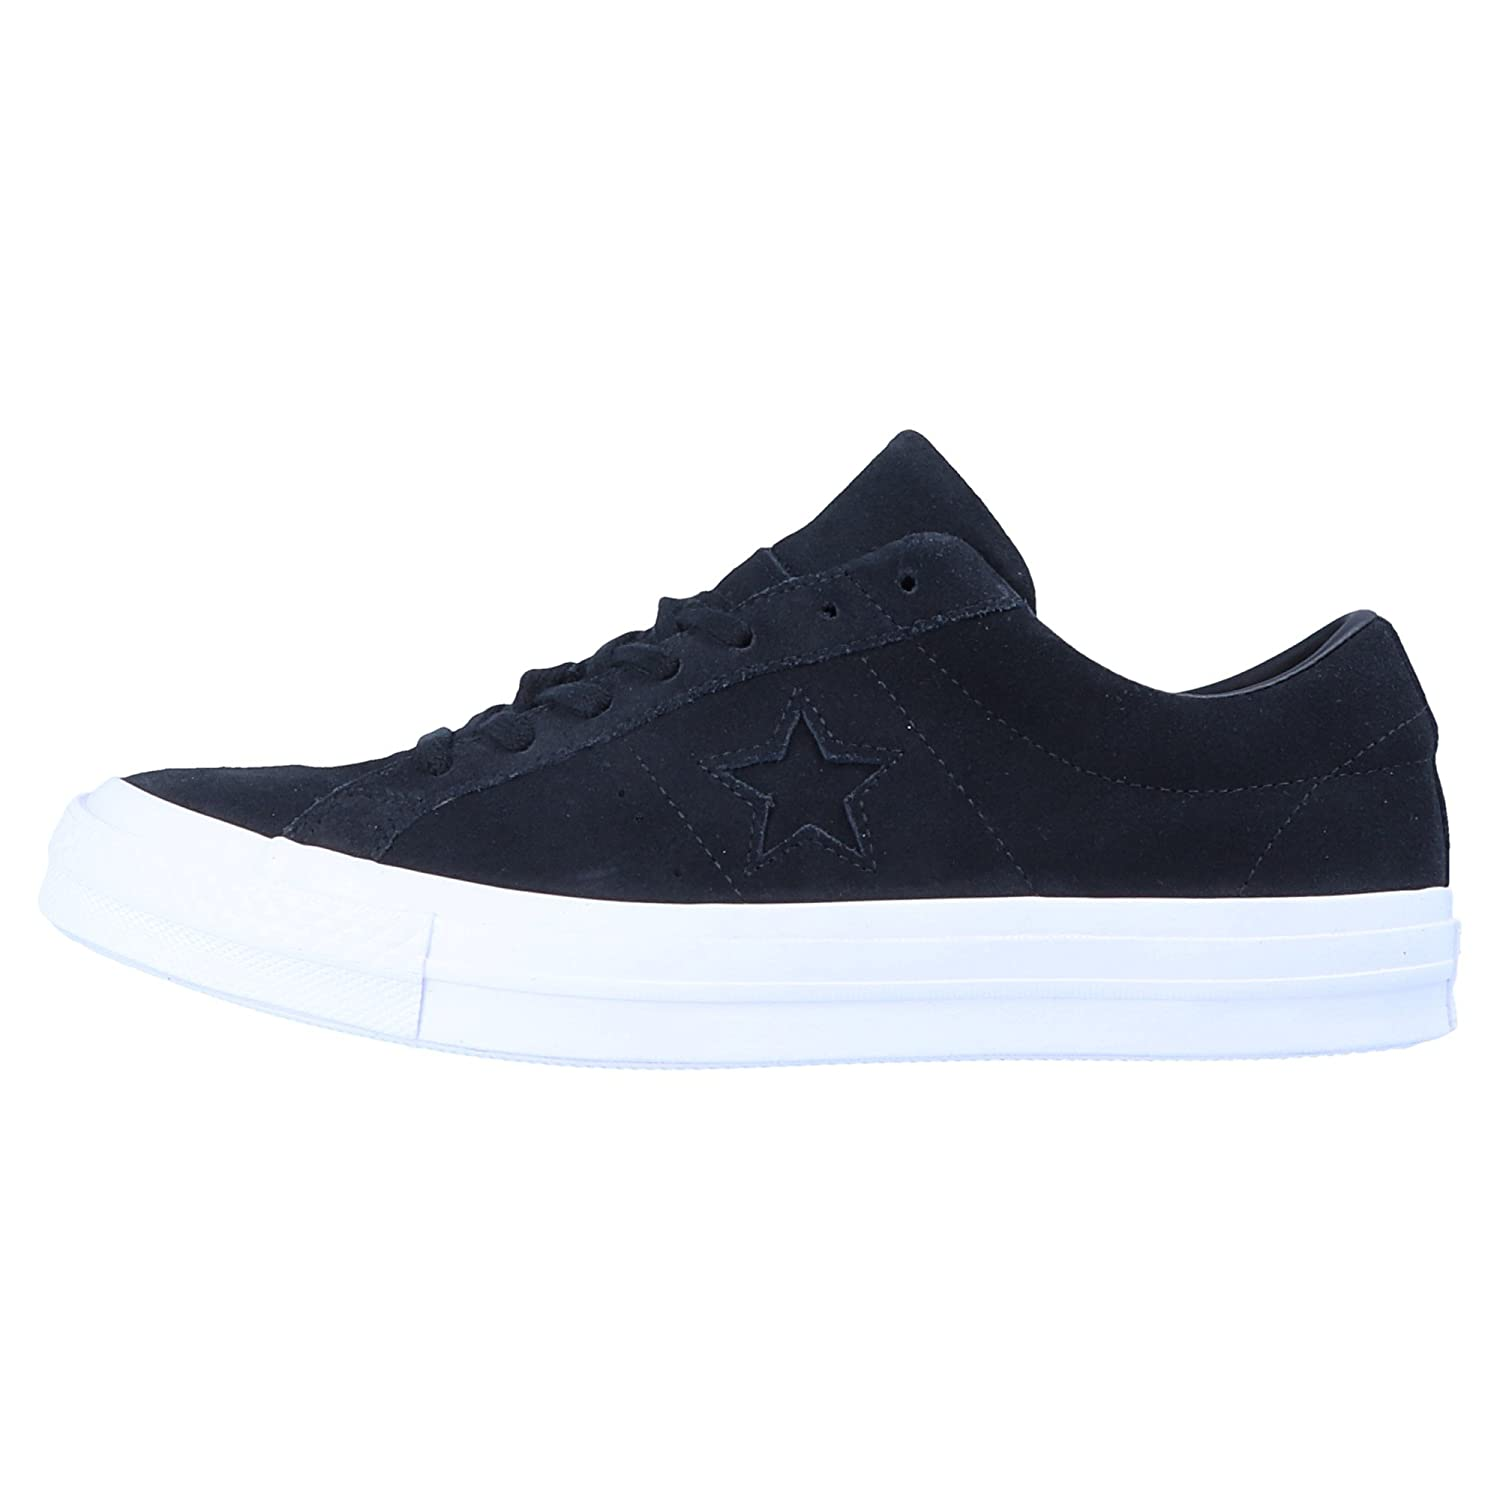 Converse ONE Star Suede - OX Unisex Sneakers Black 2492c4360